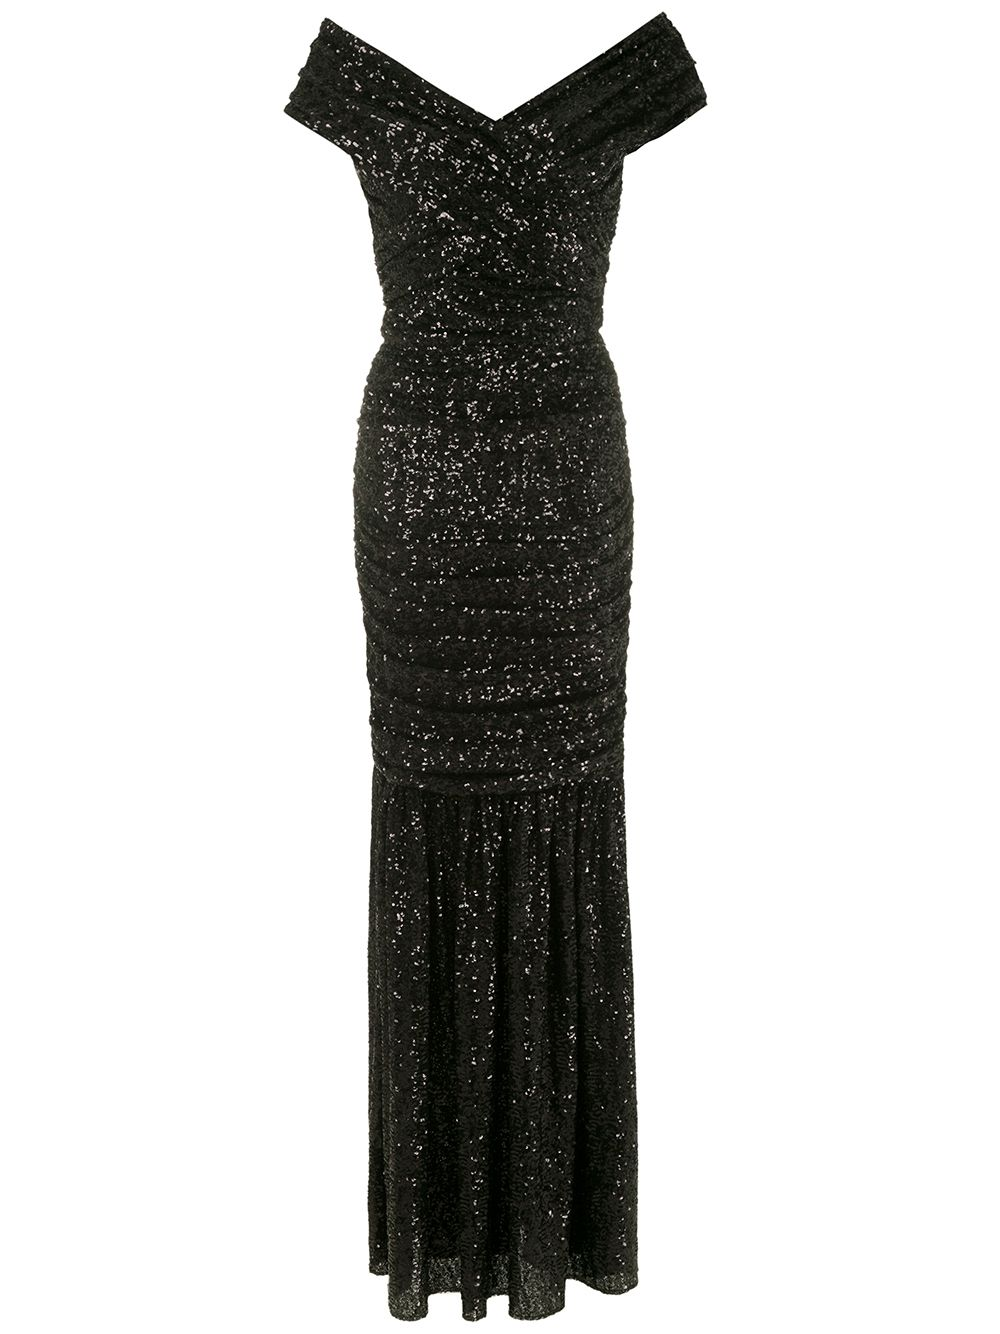 Dolce & Gabbana long sequined dress - Black von Dolce & Gabbana